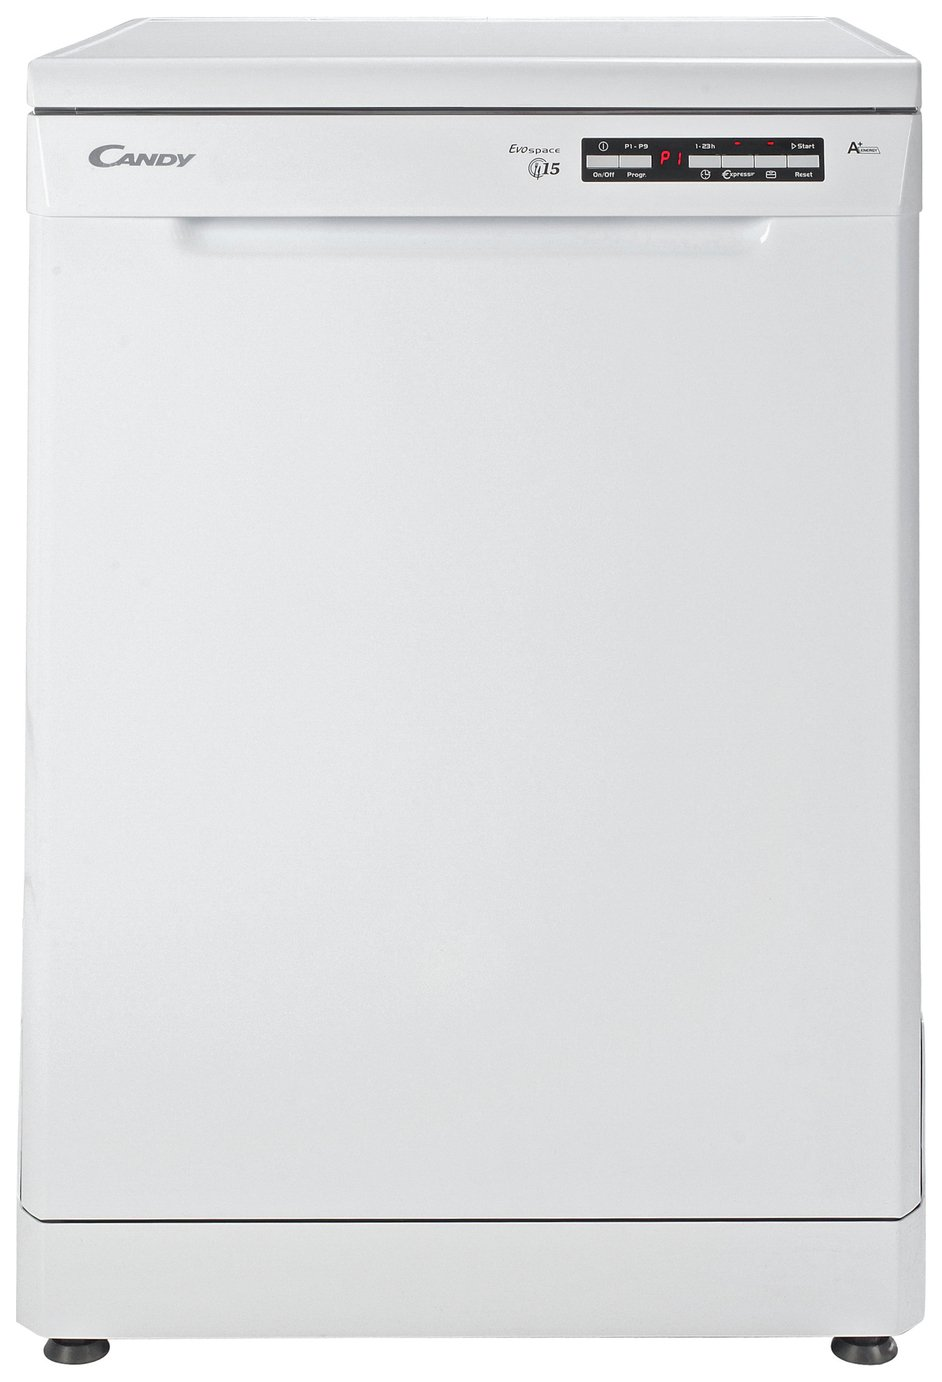 Image of Candy - CDPE6350 - Full Size Dishwasher - Ins/Del/Rec